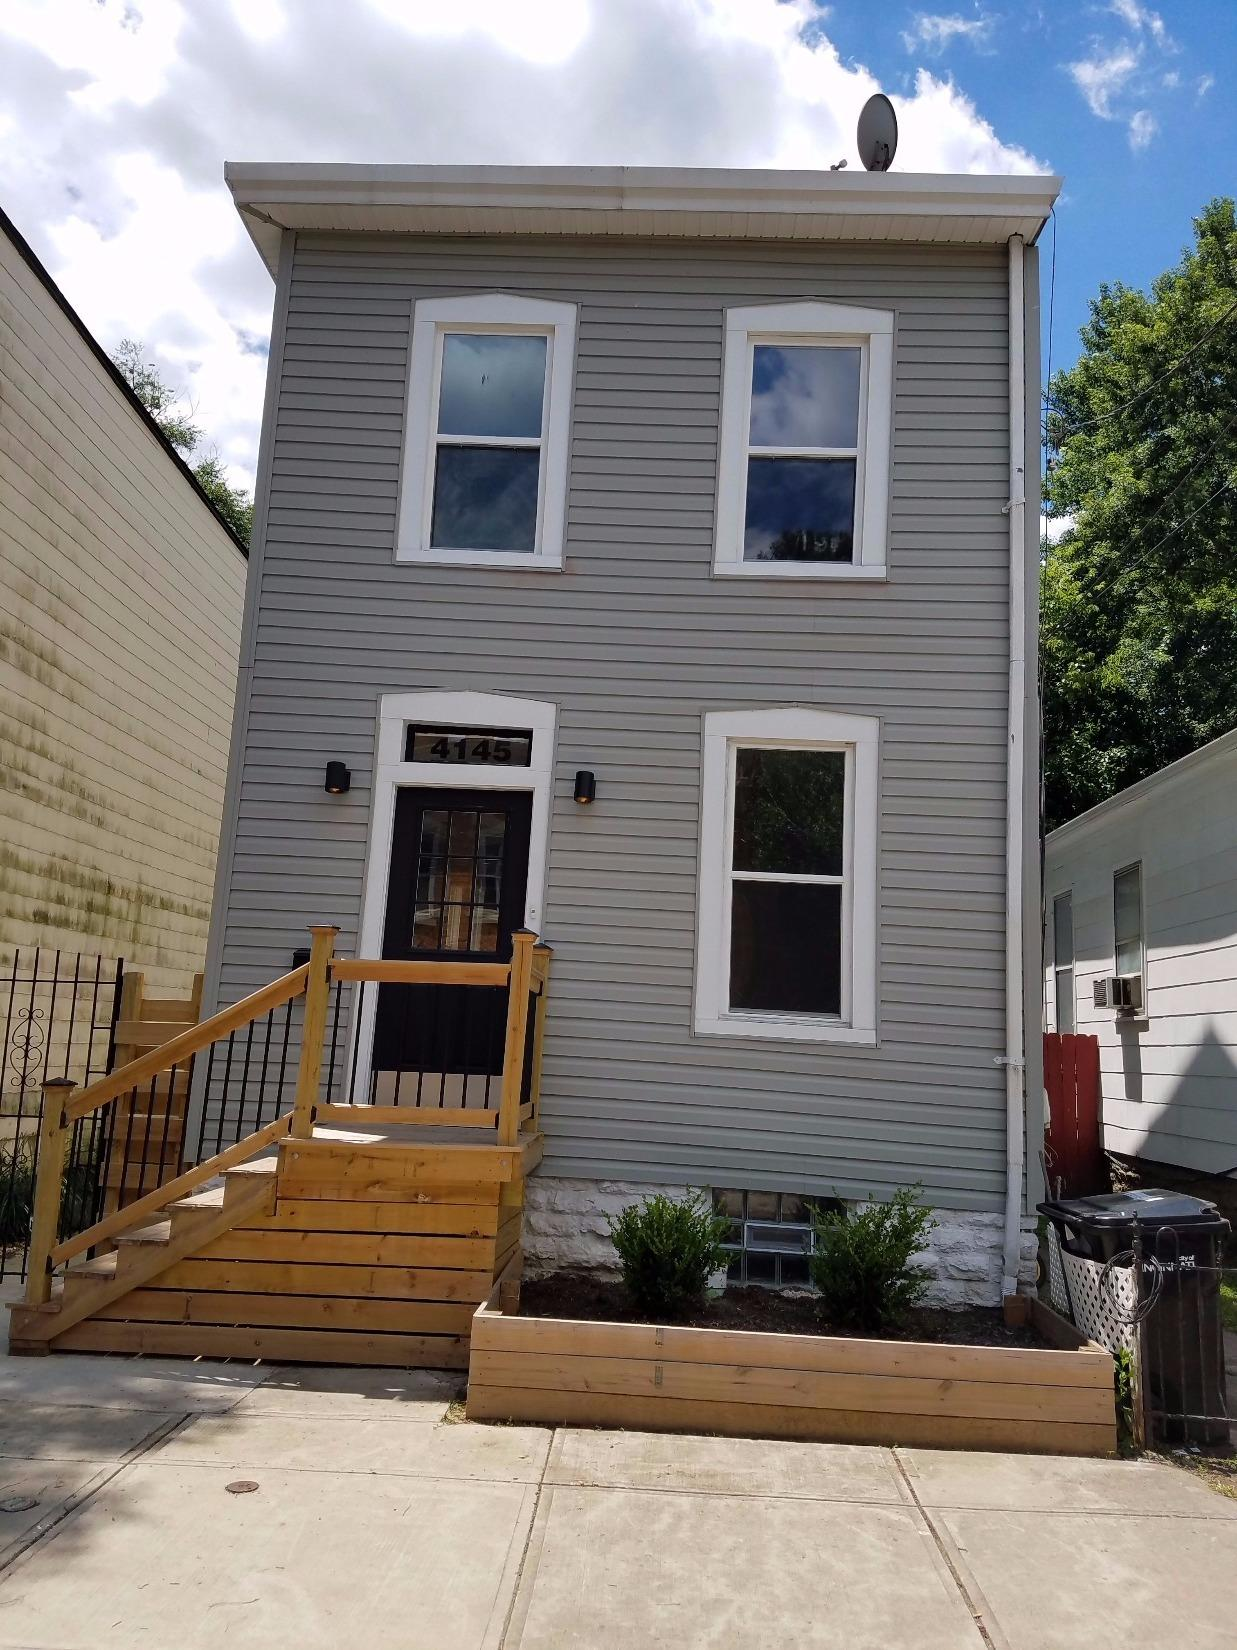 4145 Chambers St Northside Oh 45223 Listing Details Mls